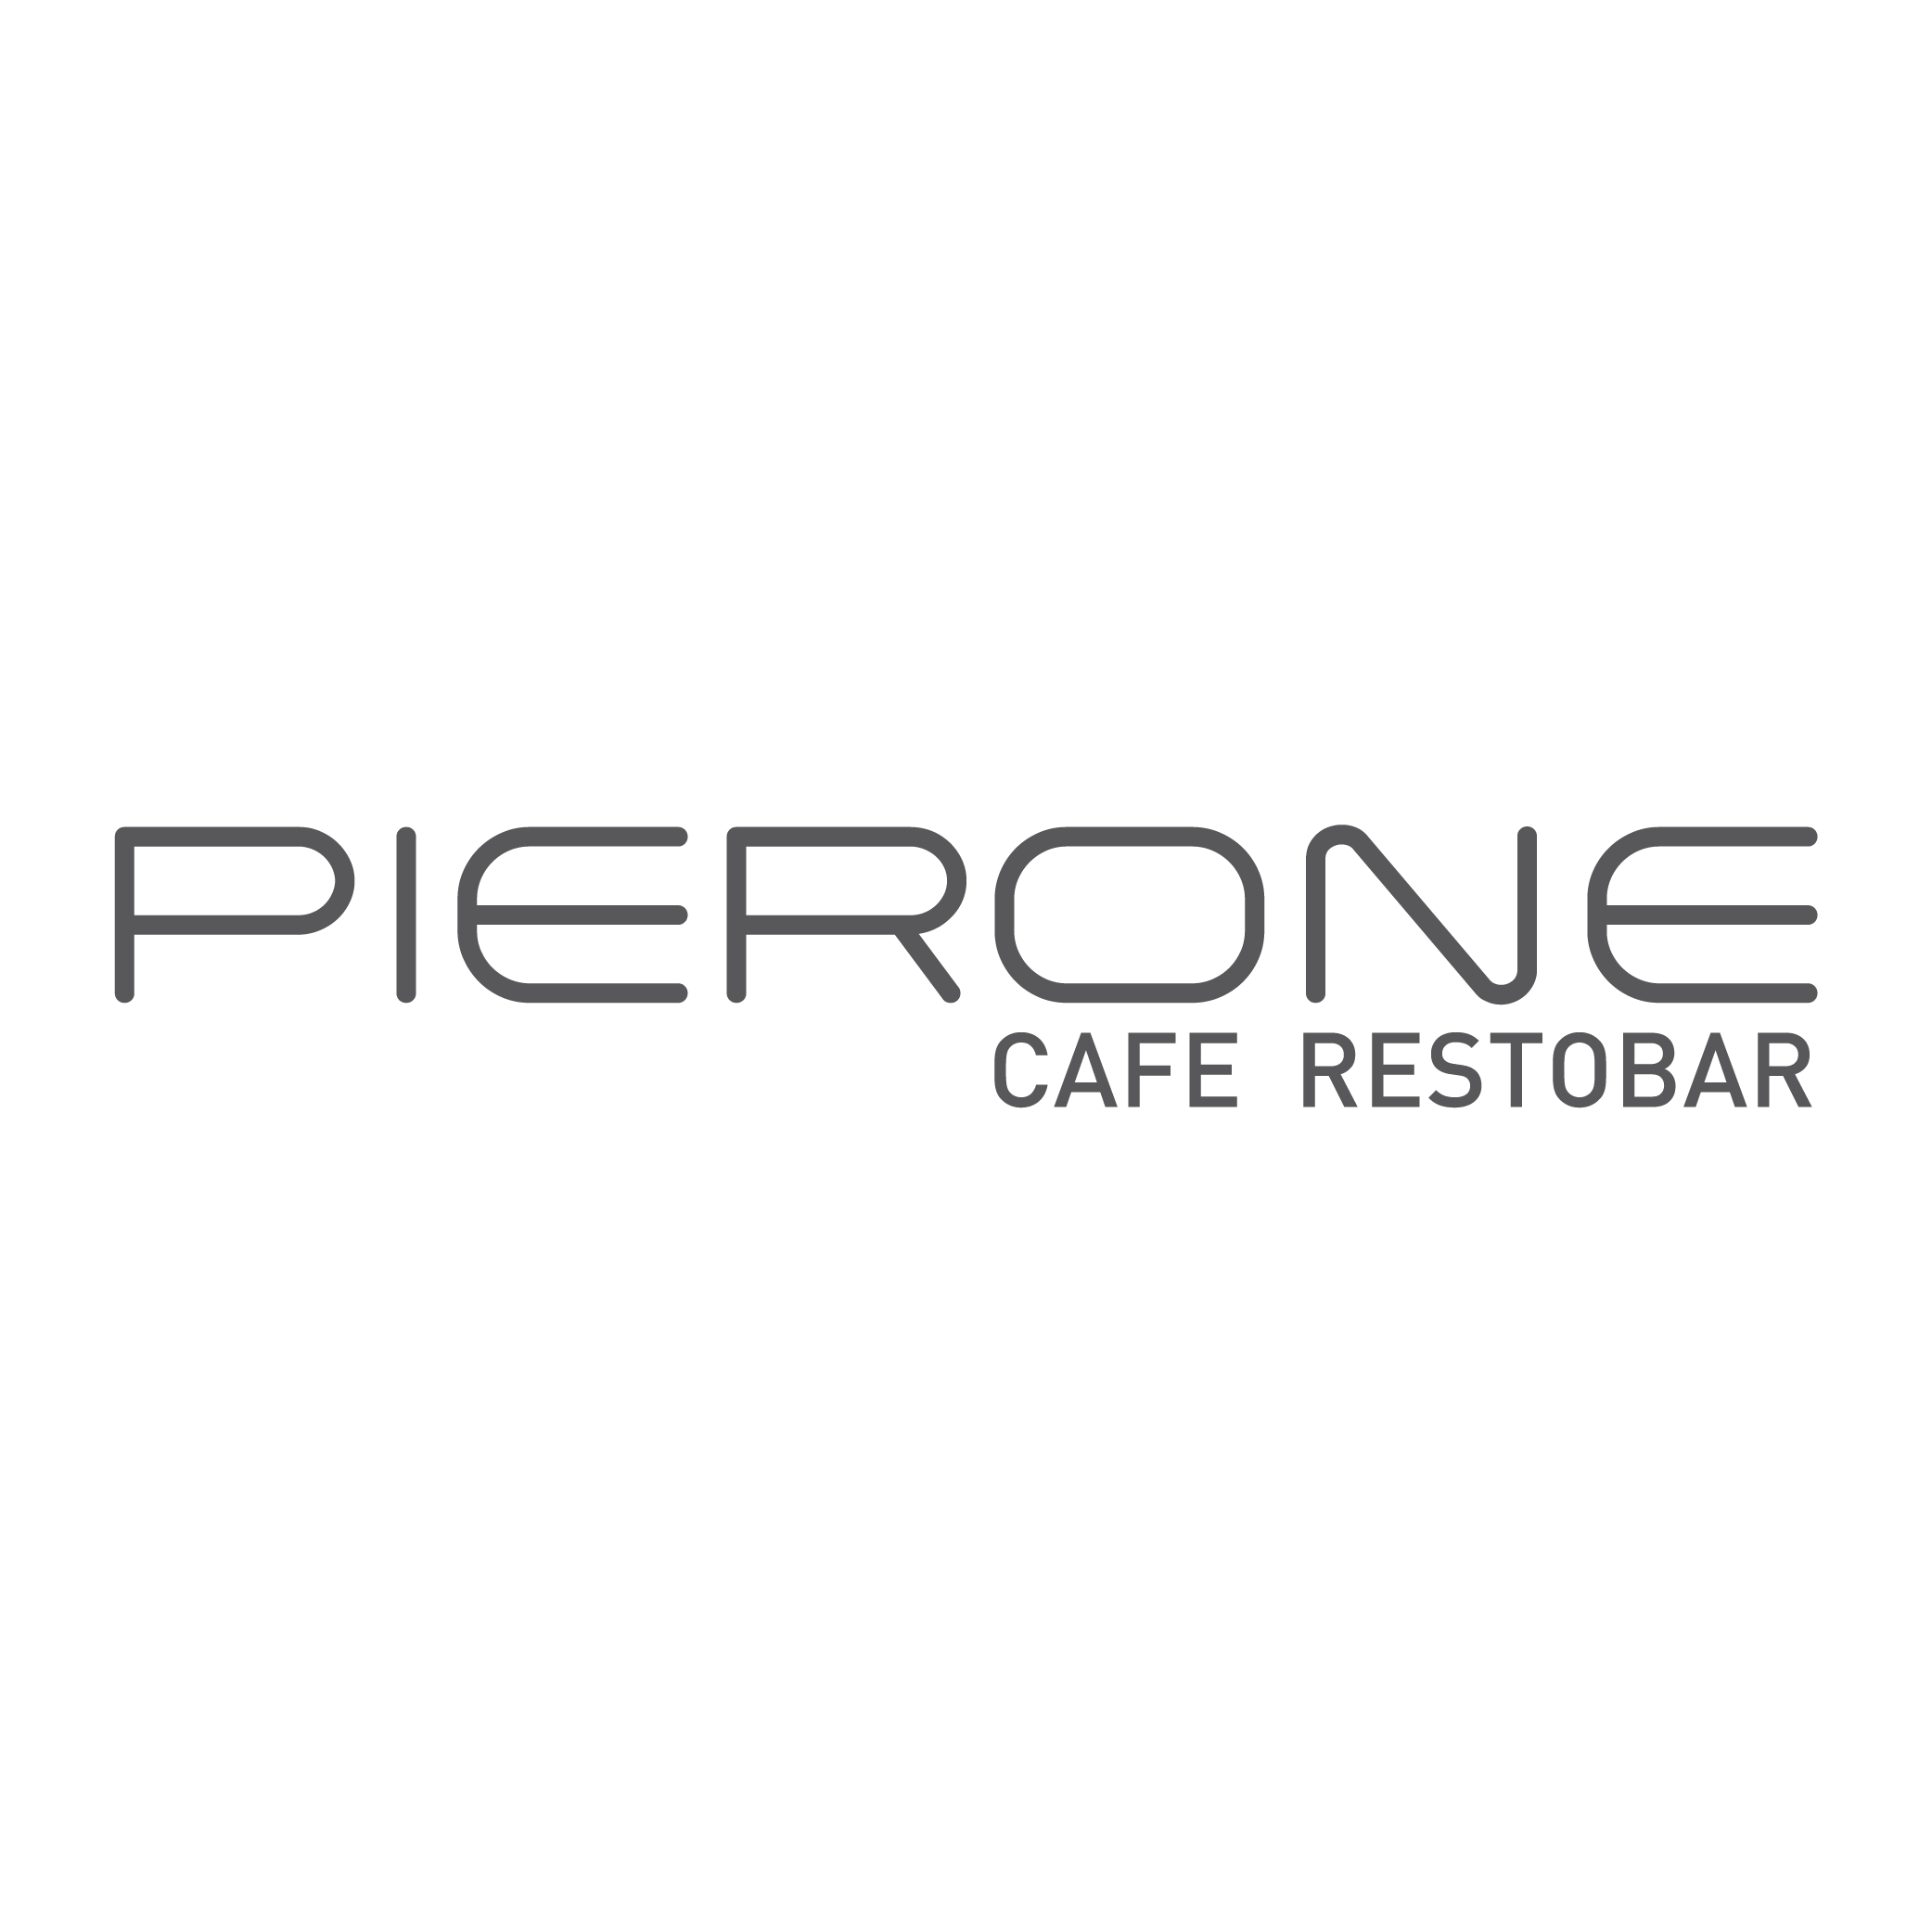 Pierone logo